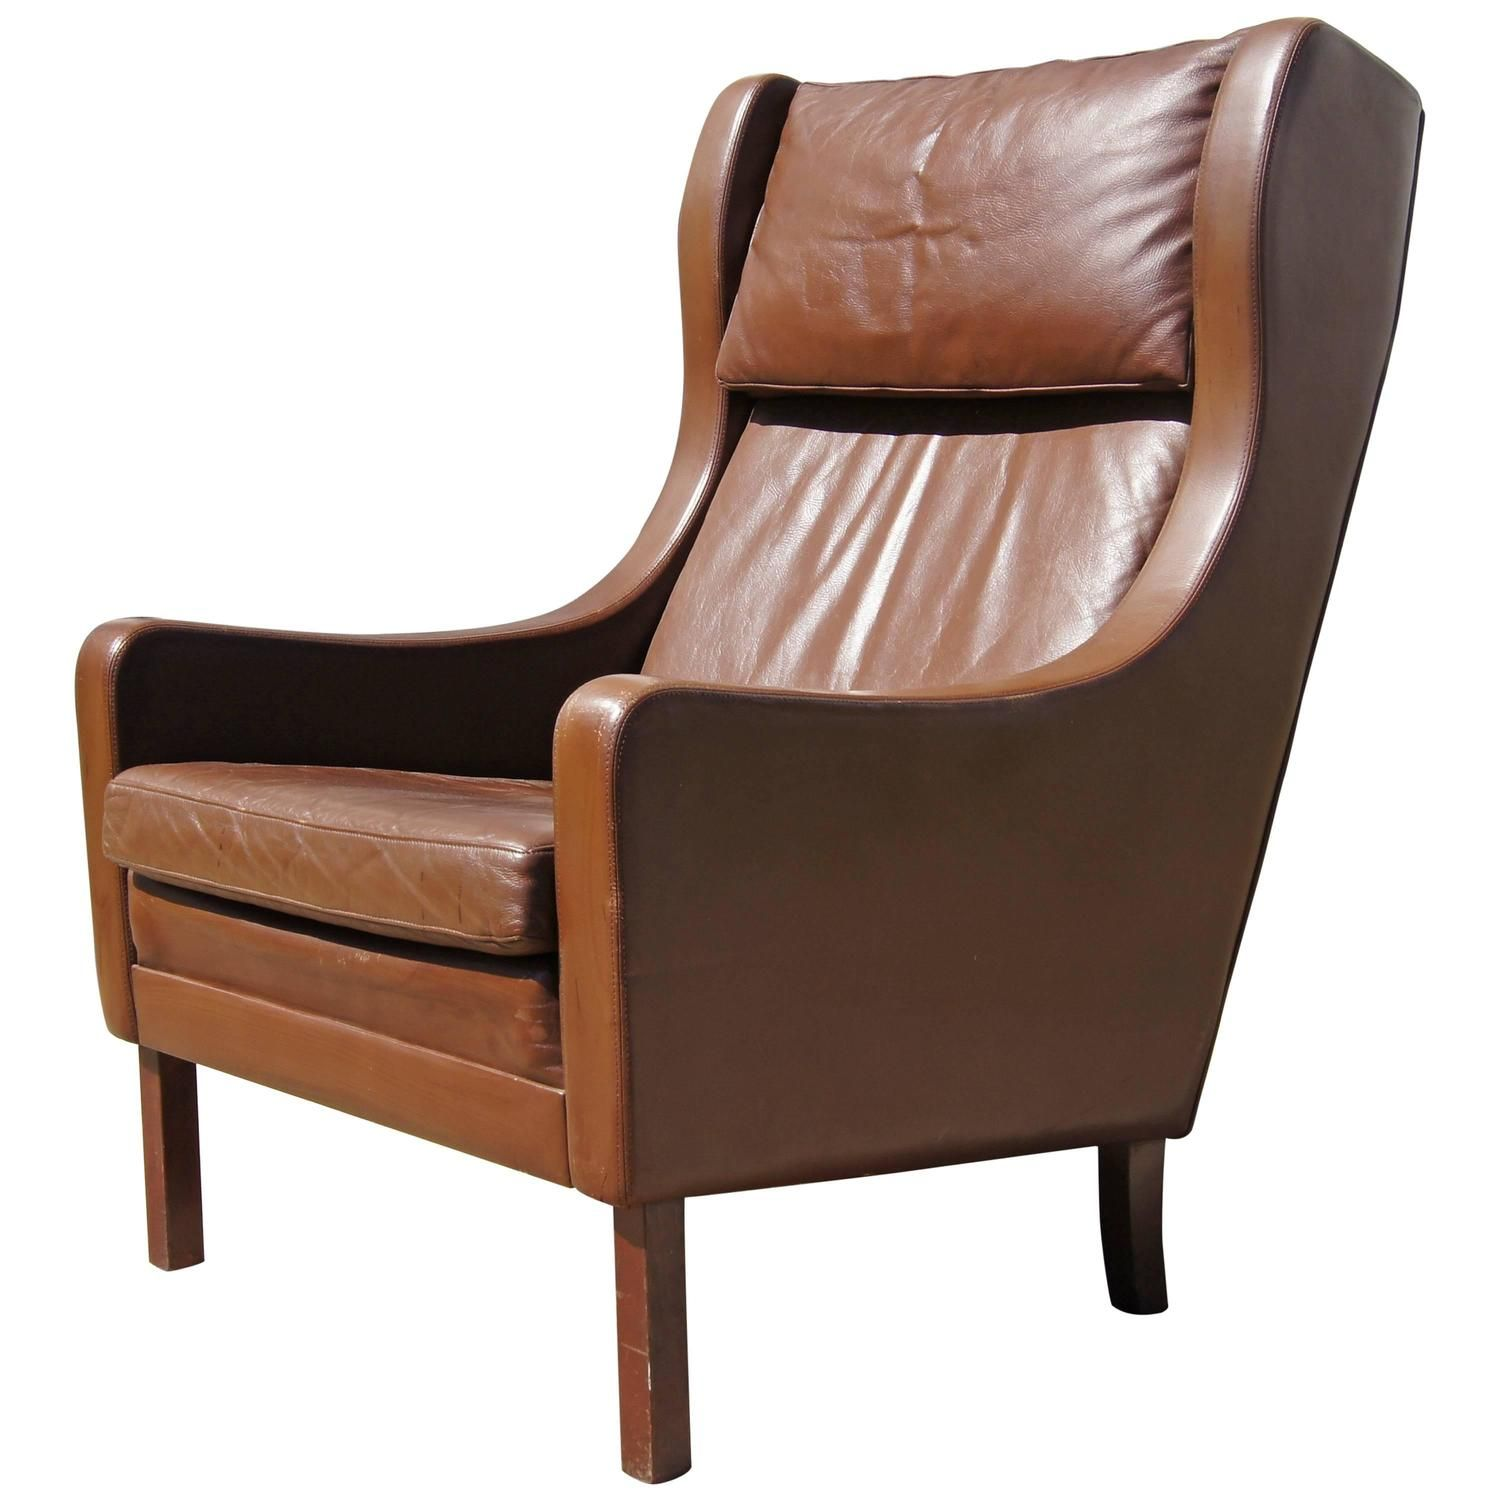 Brown Leather Highback Armchair After Borge Mogensen Leather Armchair Modern Vintage Leather Armchair Modern Leather Lounge Chair